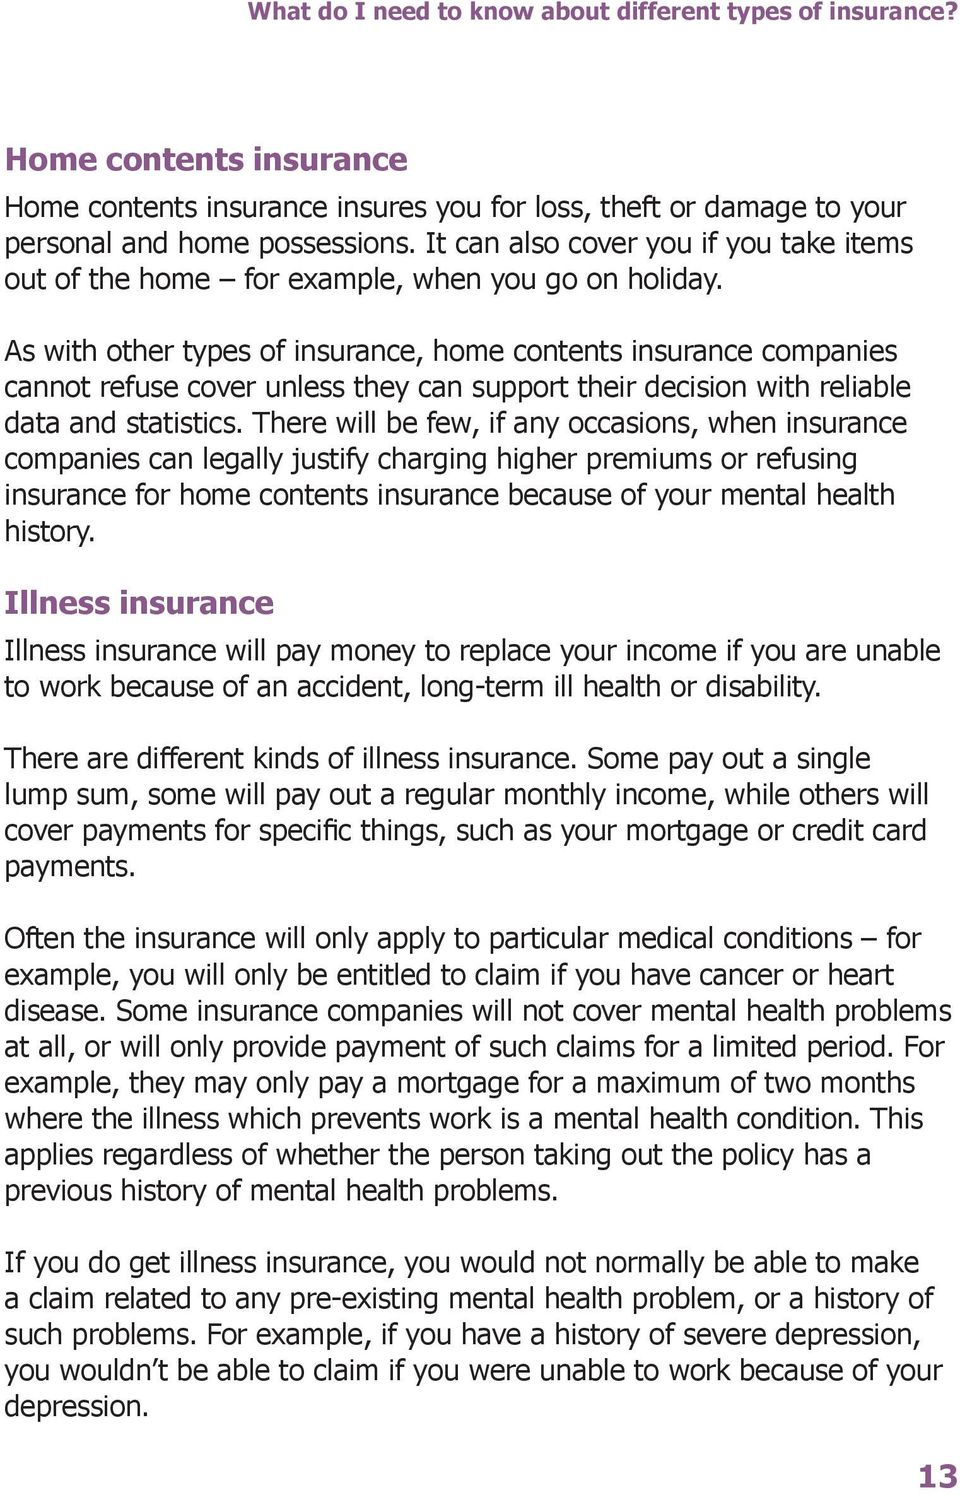 As with other types of insurance, home contents insurance companies cannot refuse cover unless they can support their decision with reliable data and statistics.